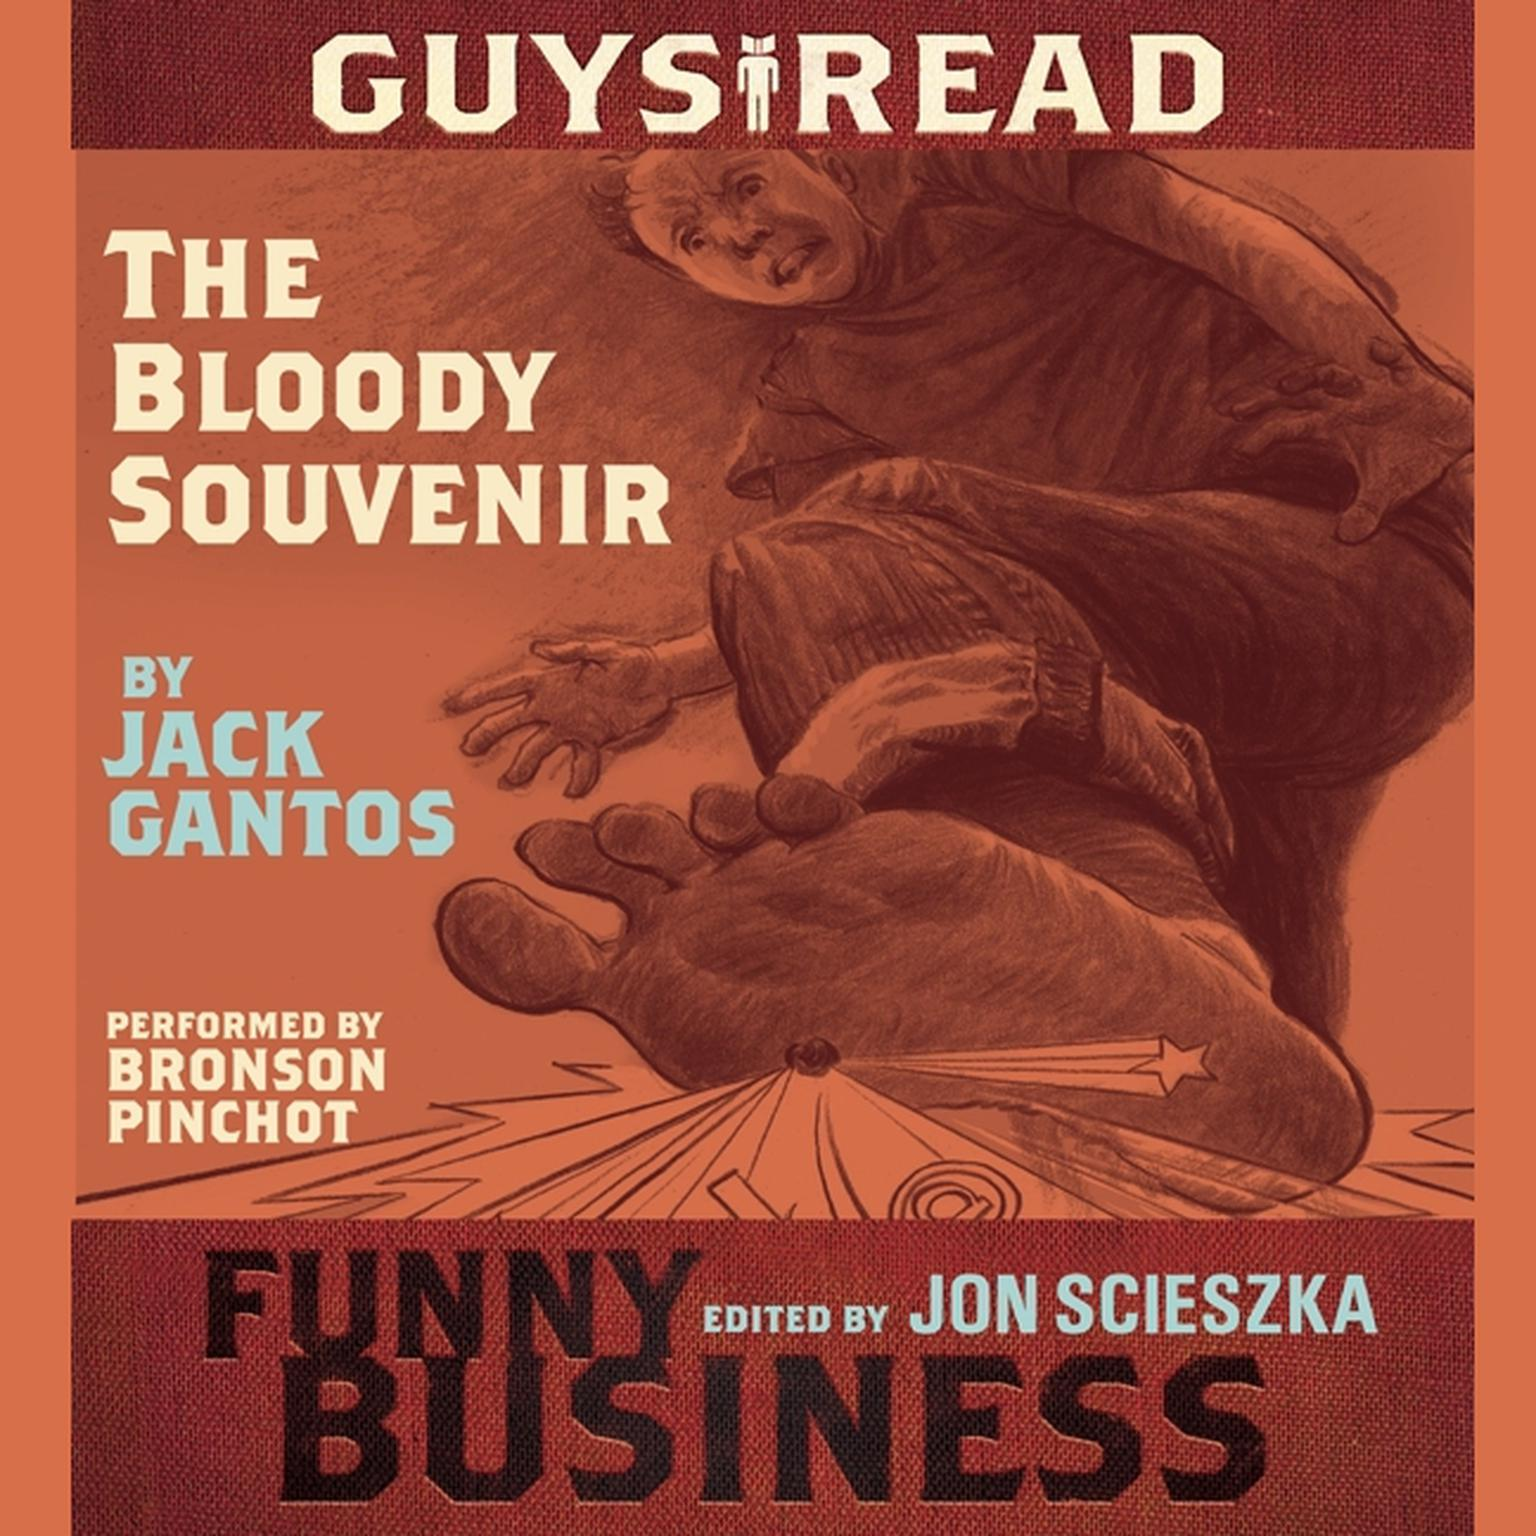 Printable Guys Read: The Bloody Souvenir: A Story from Guys Read: Funny Business Audiobook Cover Art